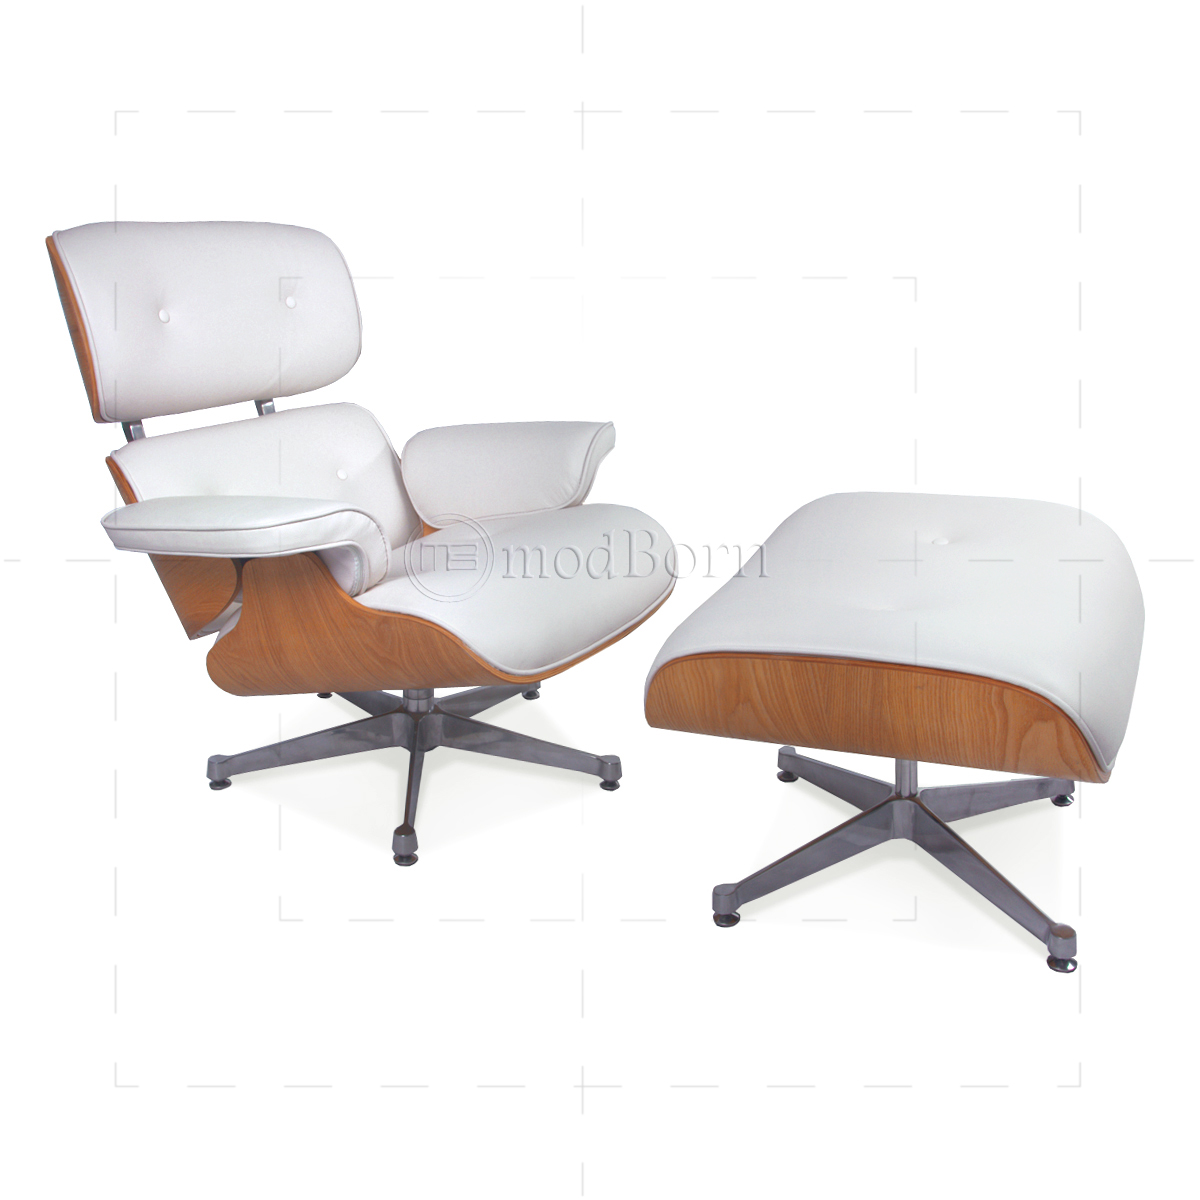 Eames Style Lounge Chair and Ottoman White Leather Oak Plywood Replica